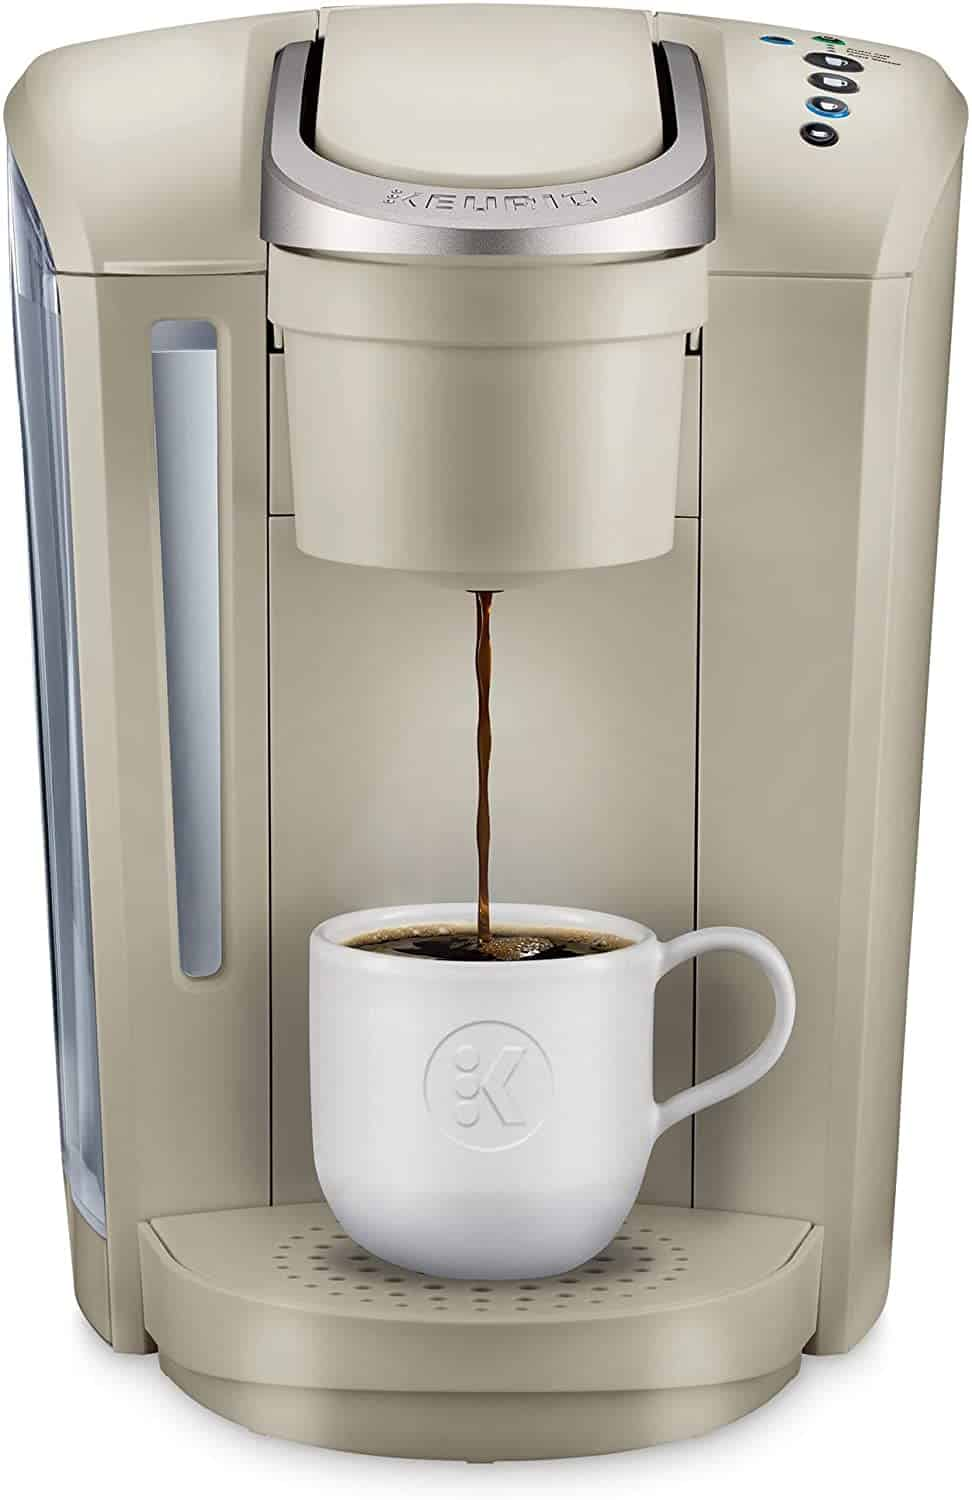 Sandstone K-Select Coffee Maker